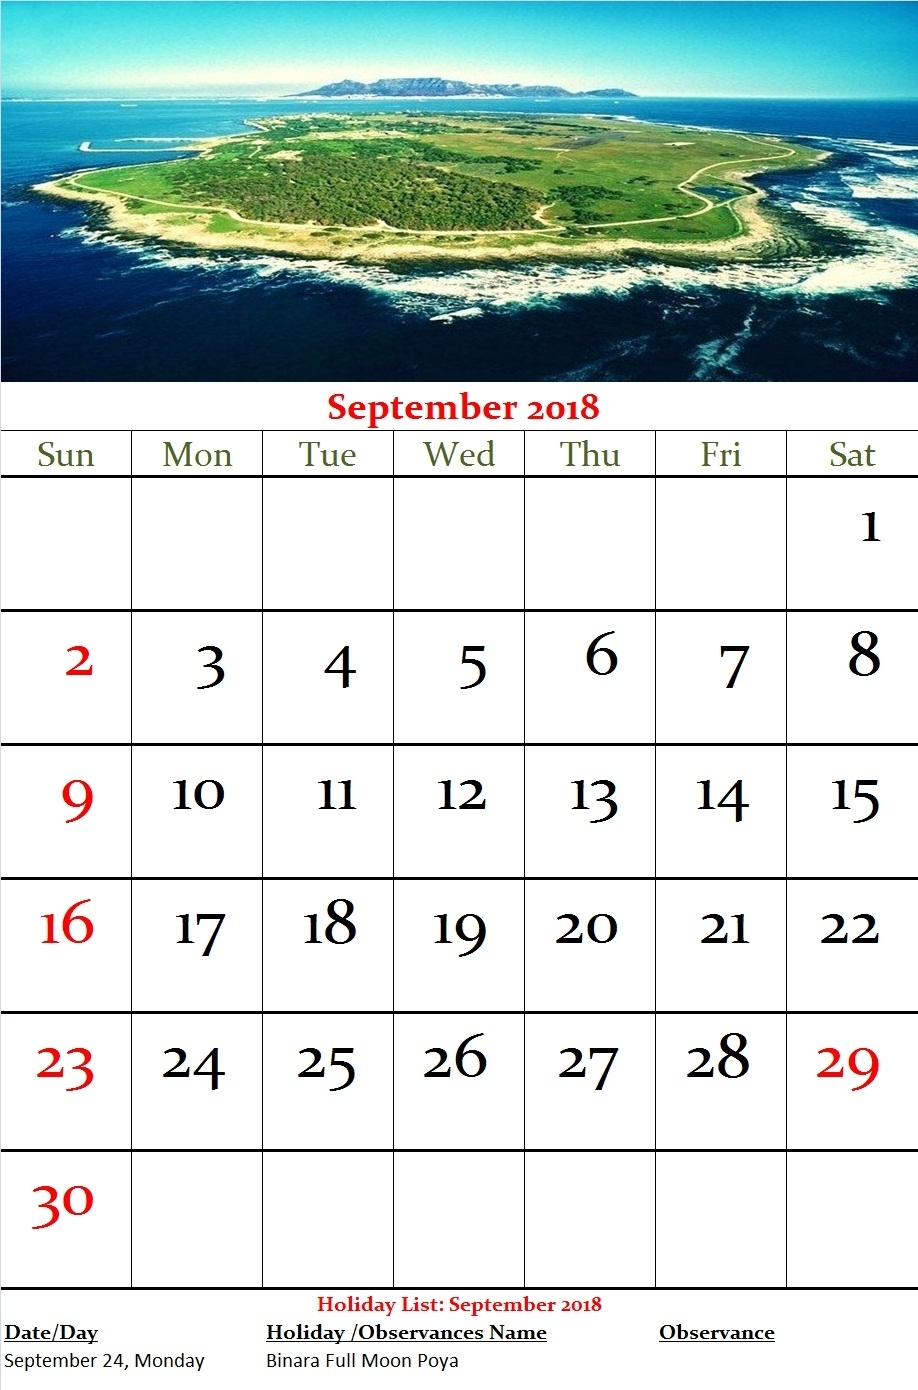 Sri Lanka Monthly Calendar September 2018 | 2017Mobilecalendars regarding Sri Lanka Calendar Of September With Holidays